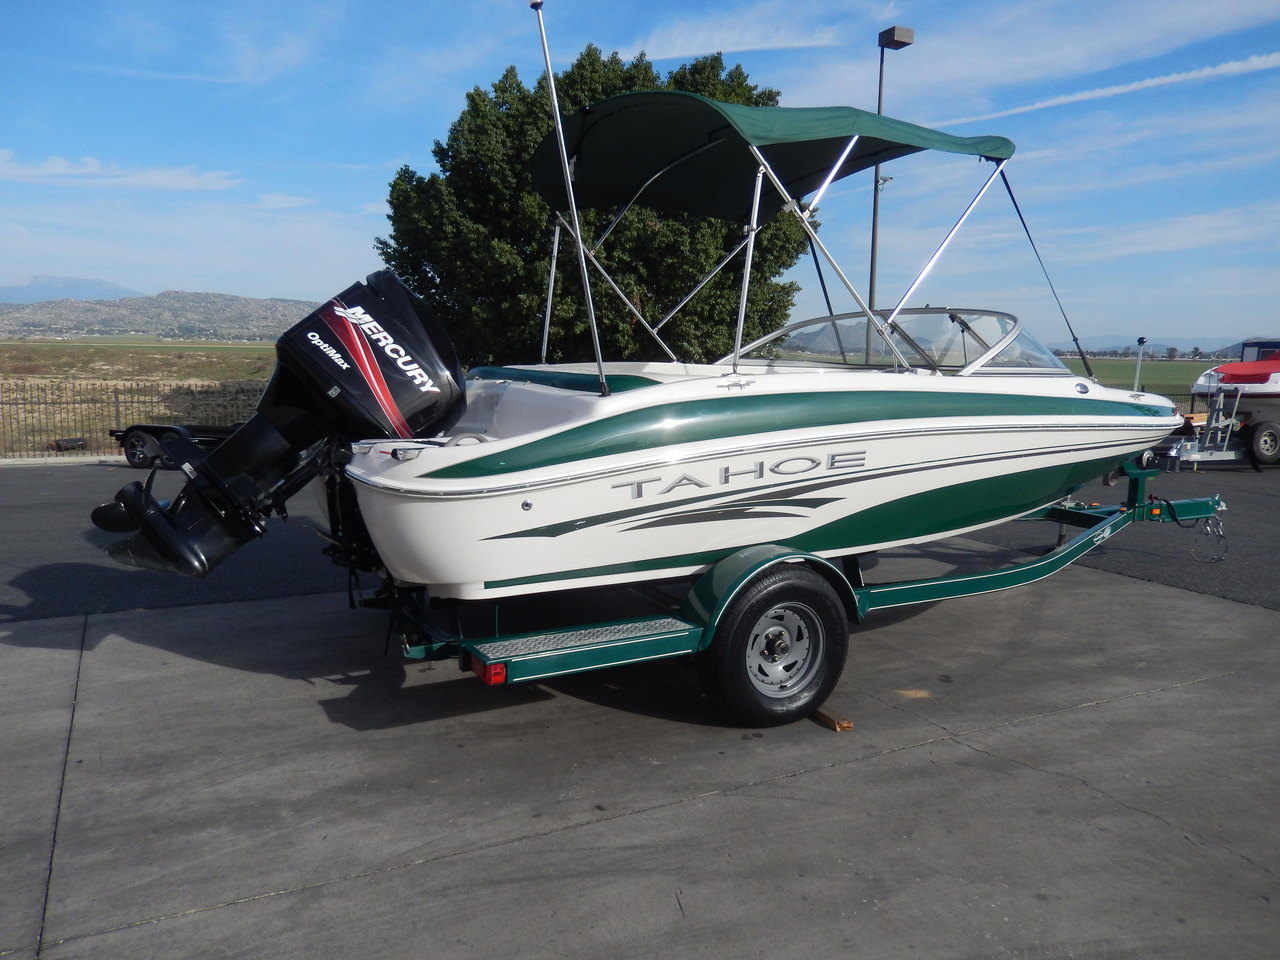 Boise boats craigslist autos post for Fishing boats for sale craigslist